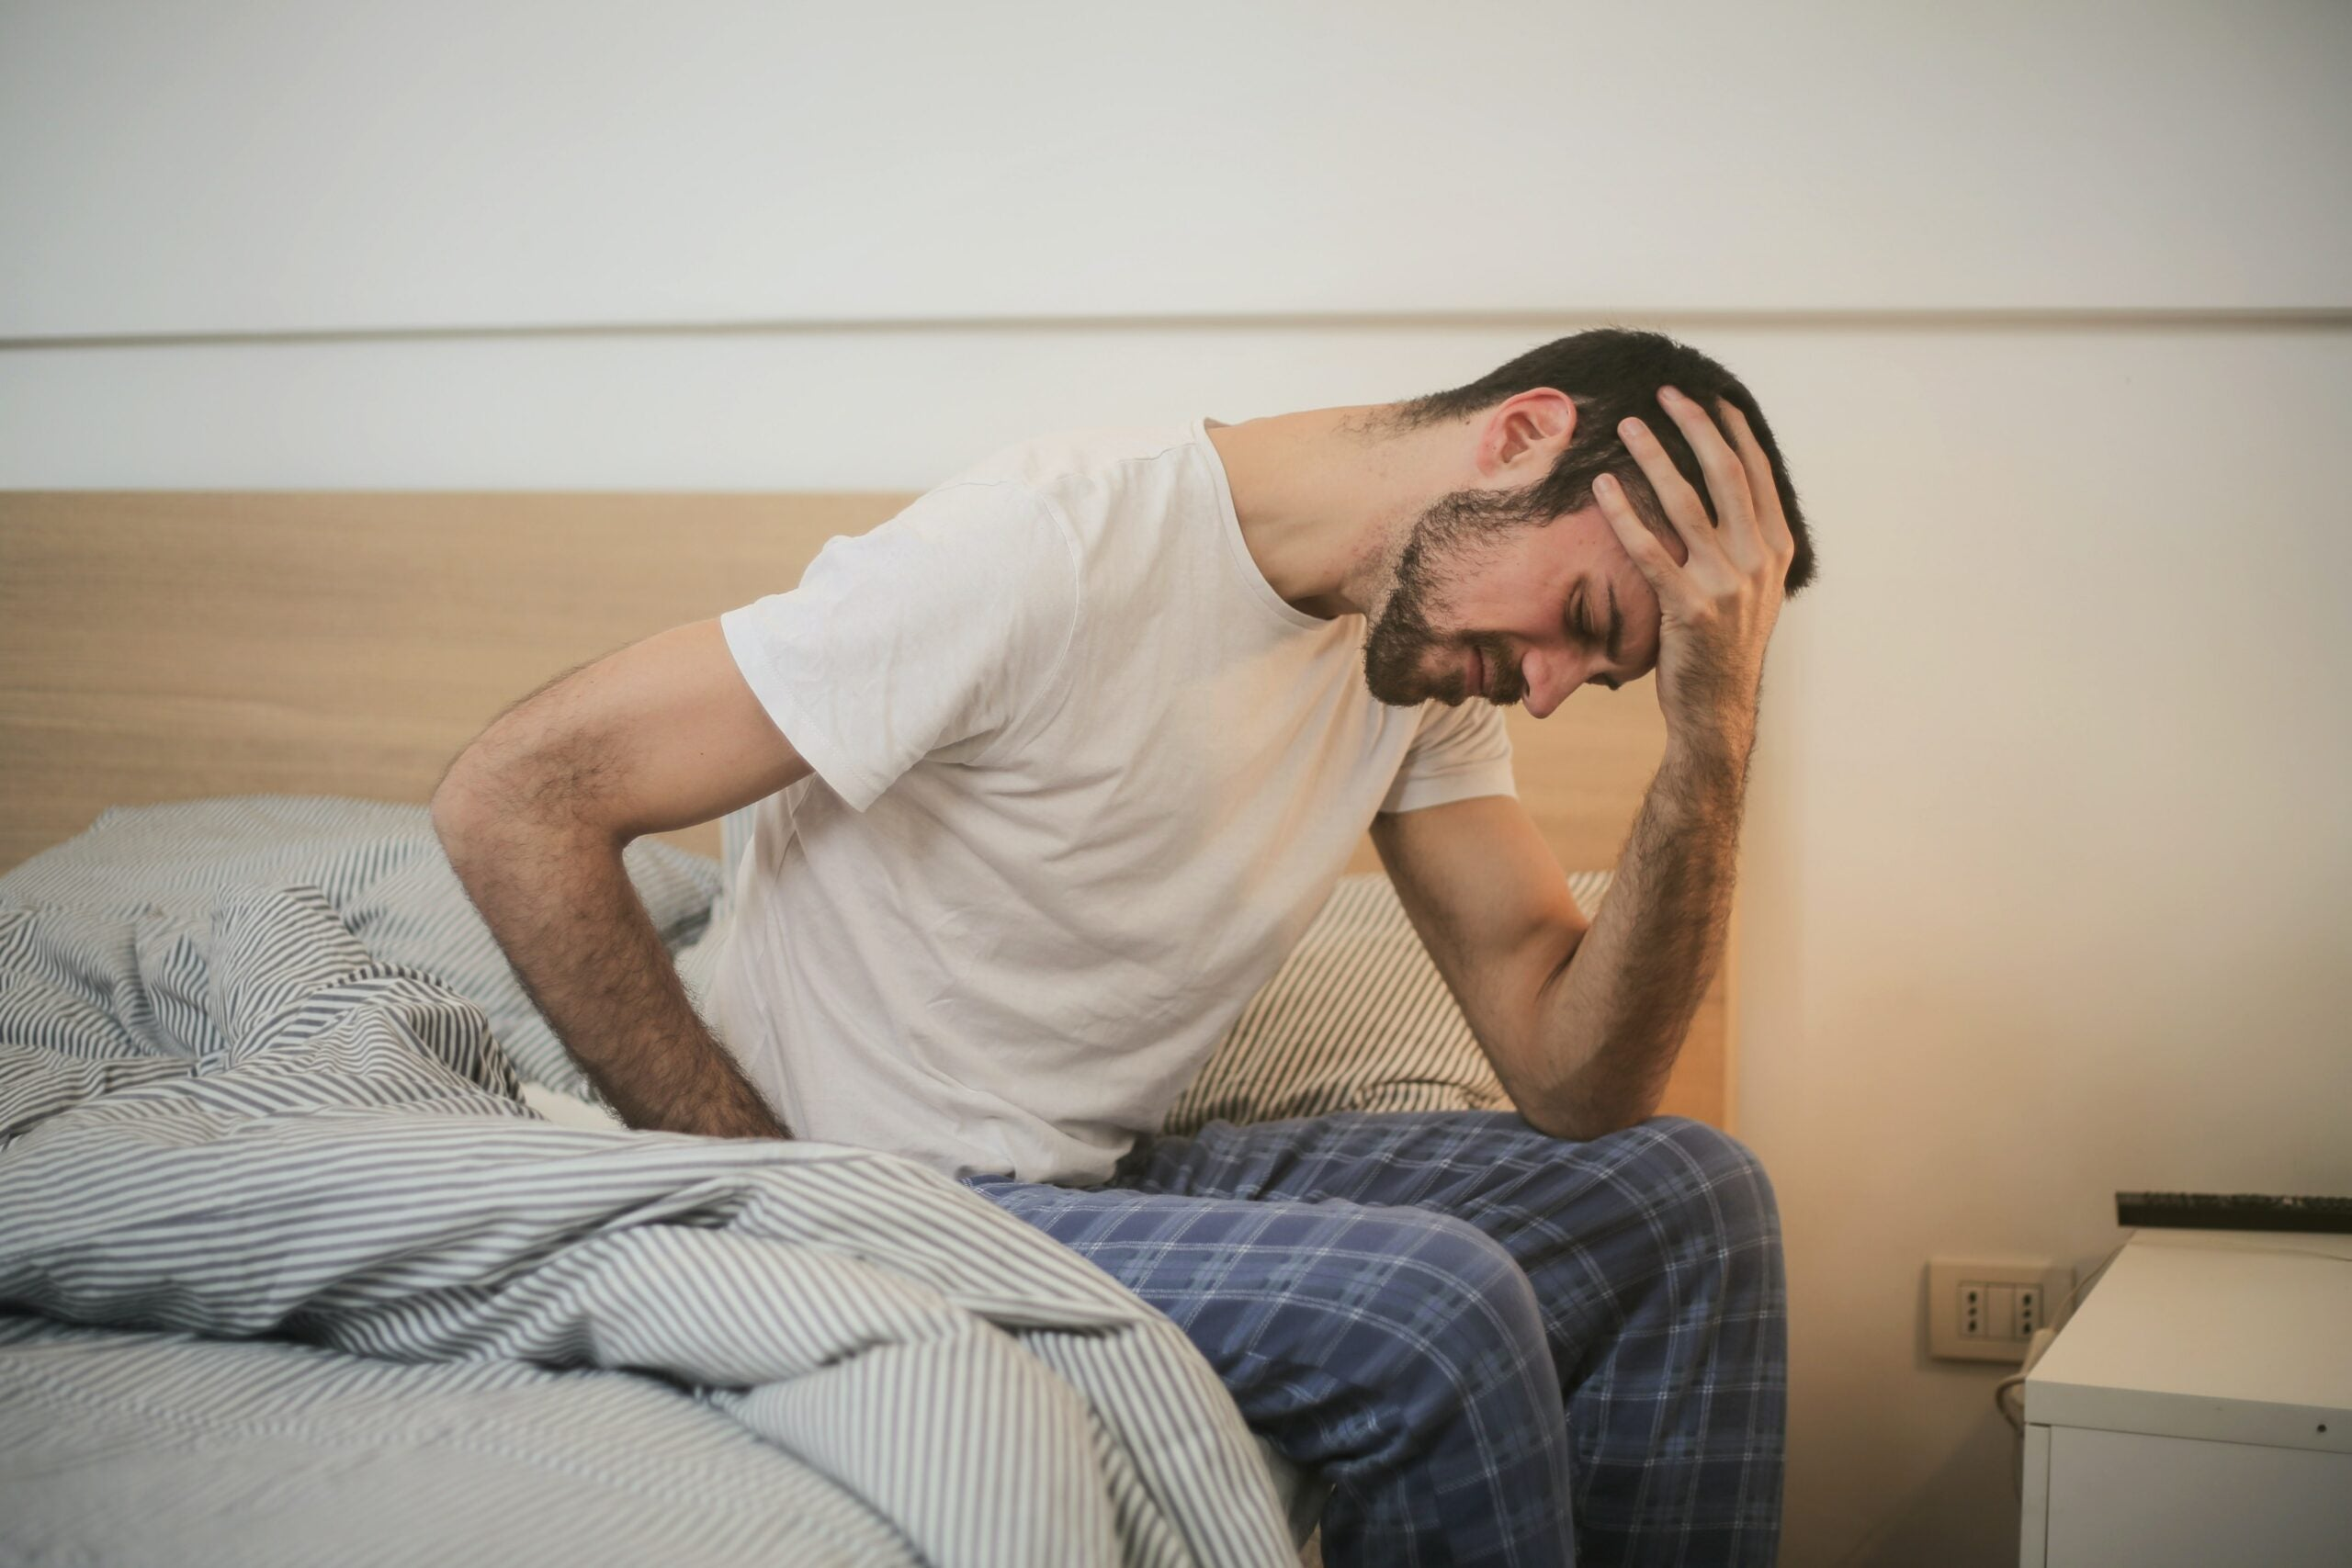 Man with headache on bed.